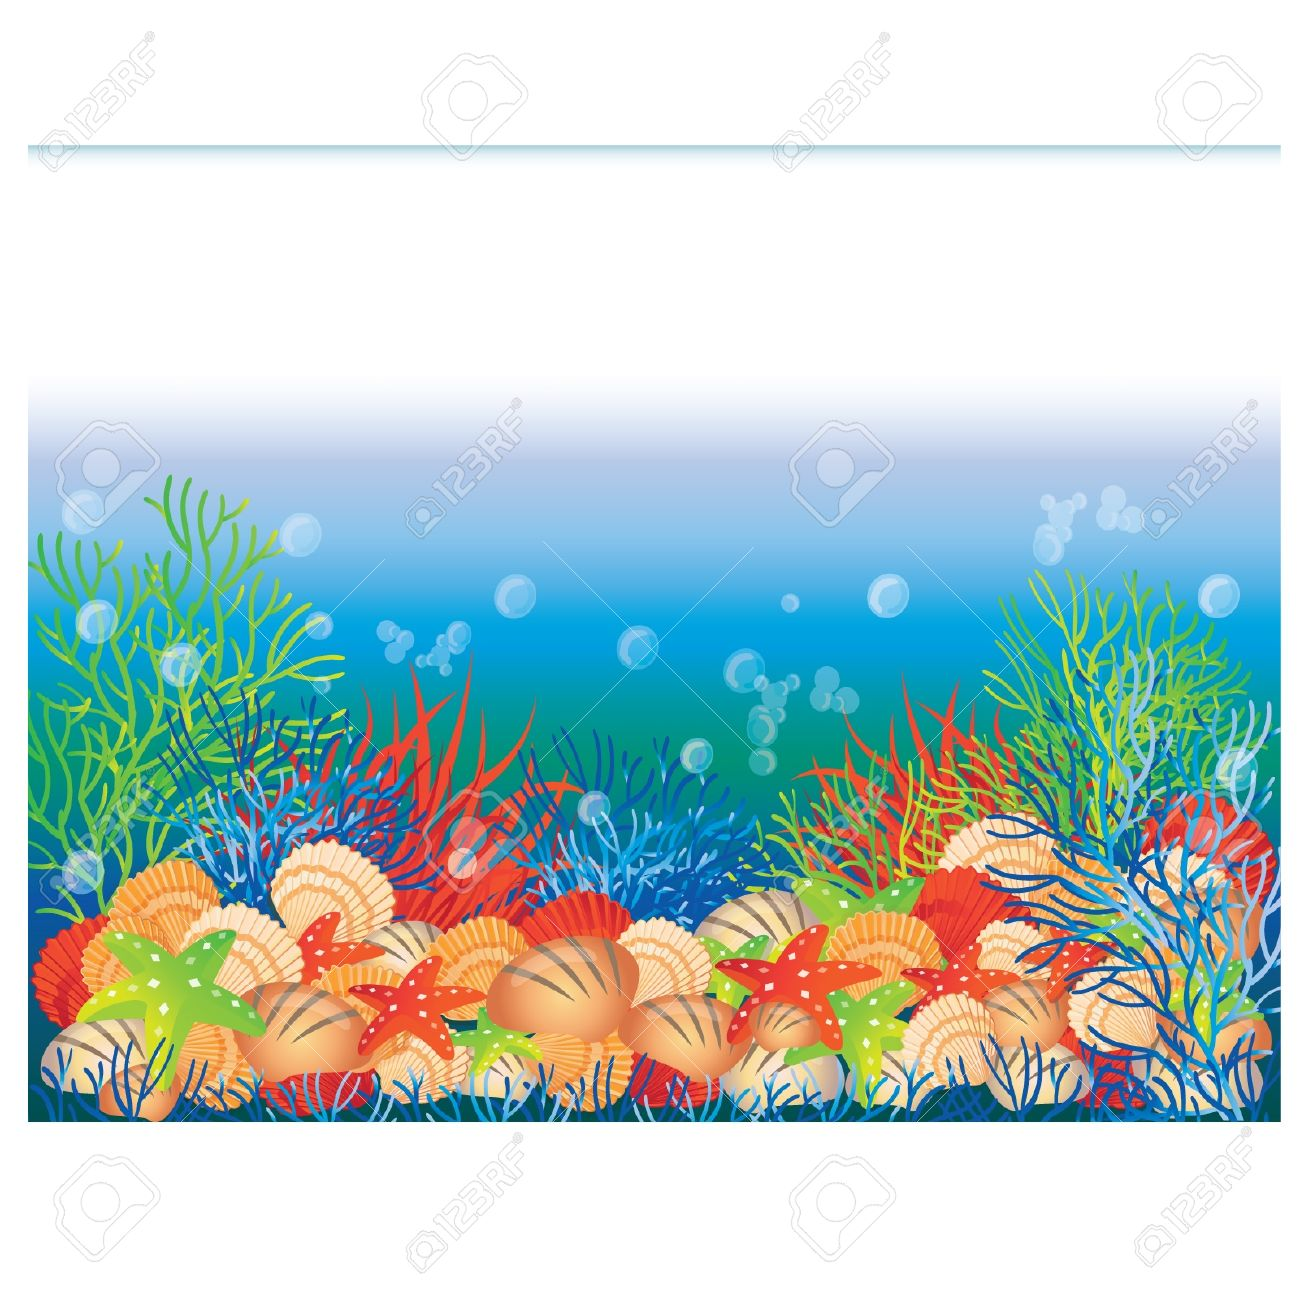 Sea Bed clipart #5, Download drawings